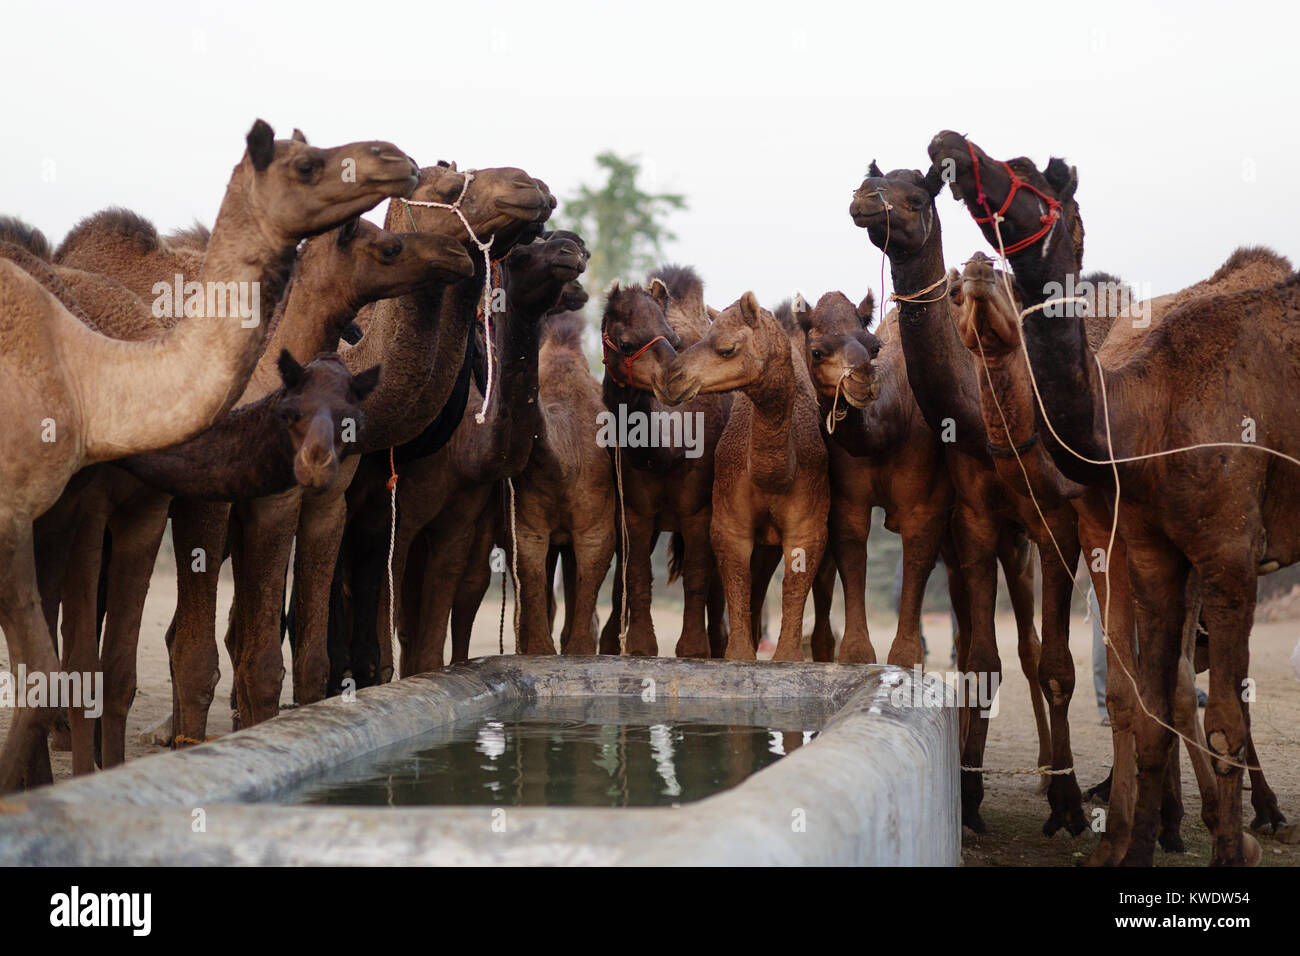 Scene at Pushkar Camel Fair, herd of camels standing by water tank and drinking, Rajasthan, India - Stock Image